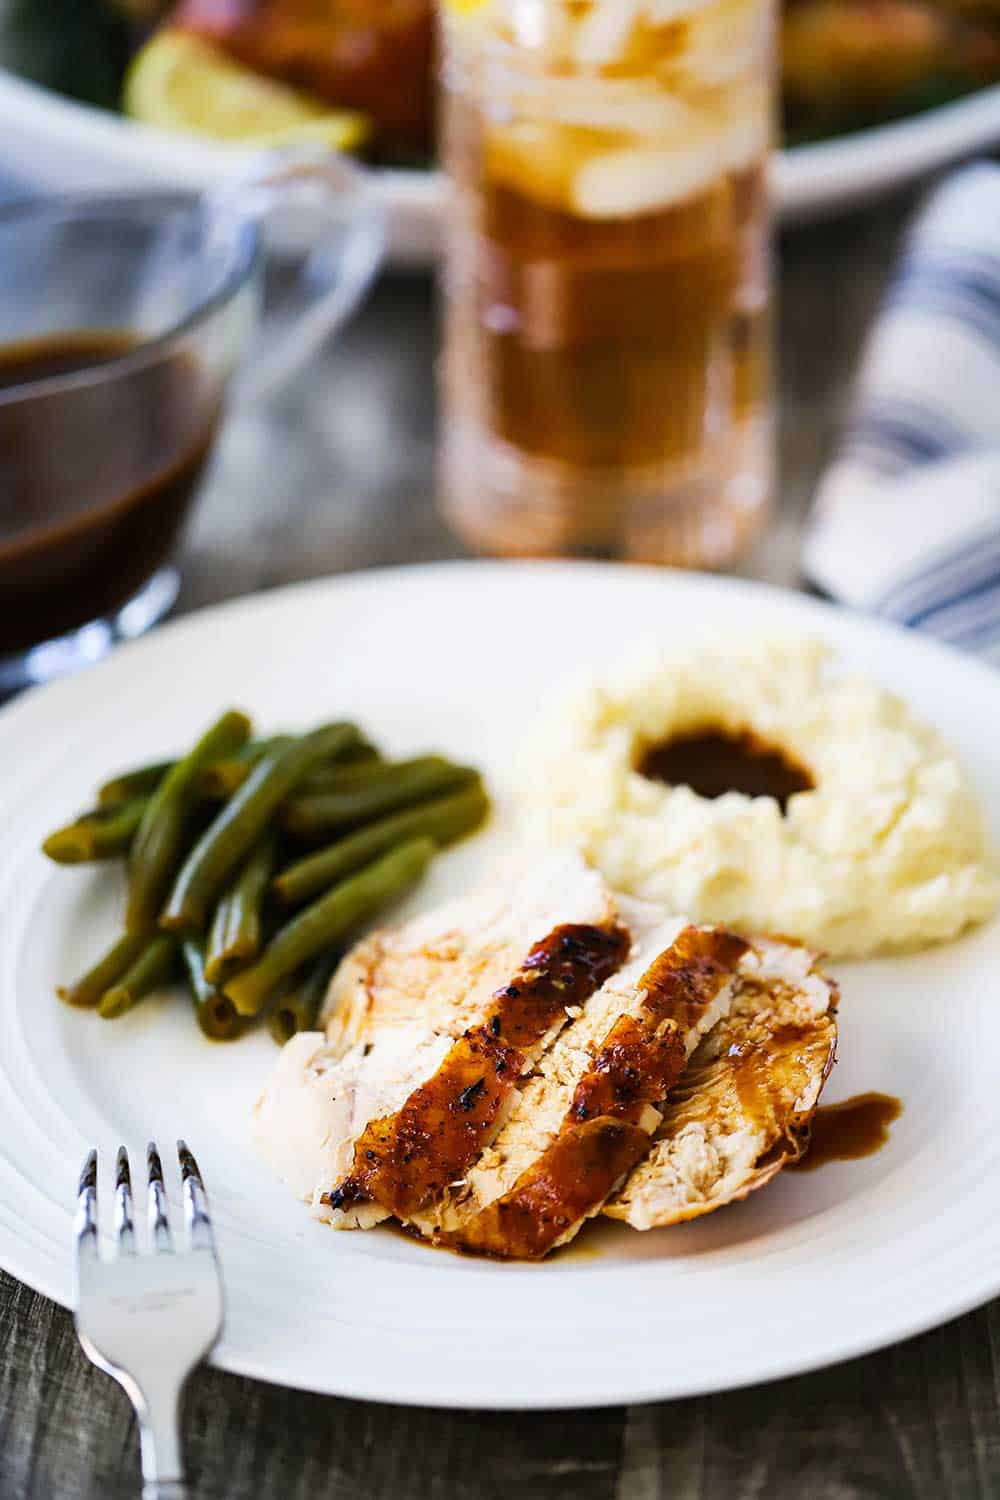 A white dinner plate filled with sliced roasted chicken, mashed potatoes and gravy, and green beans.